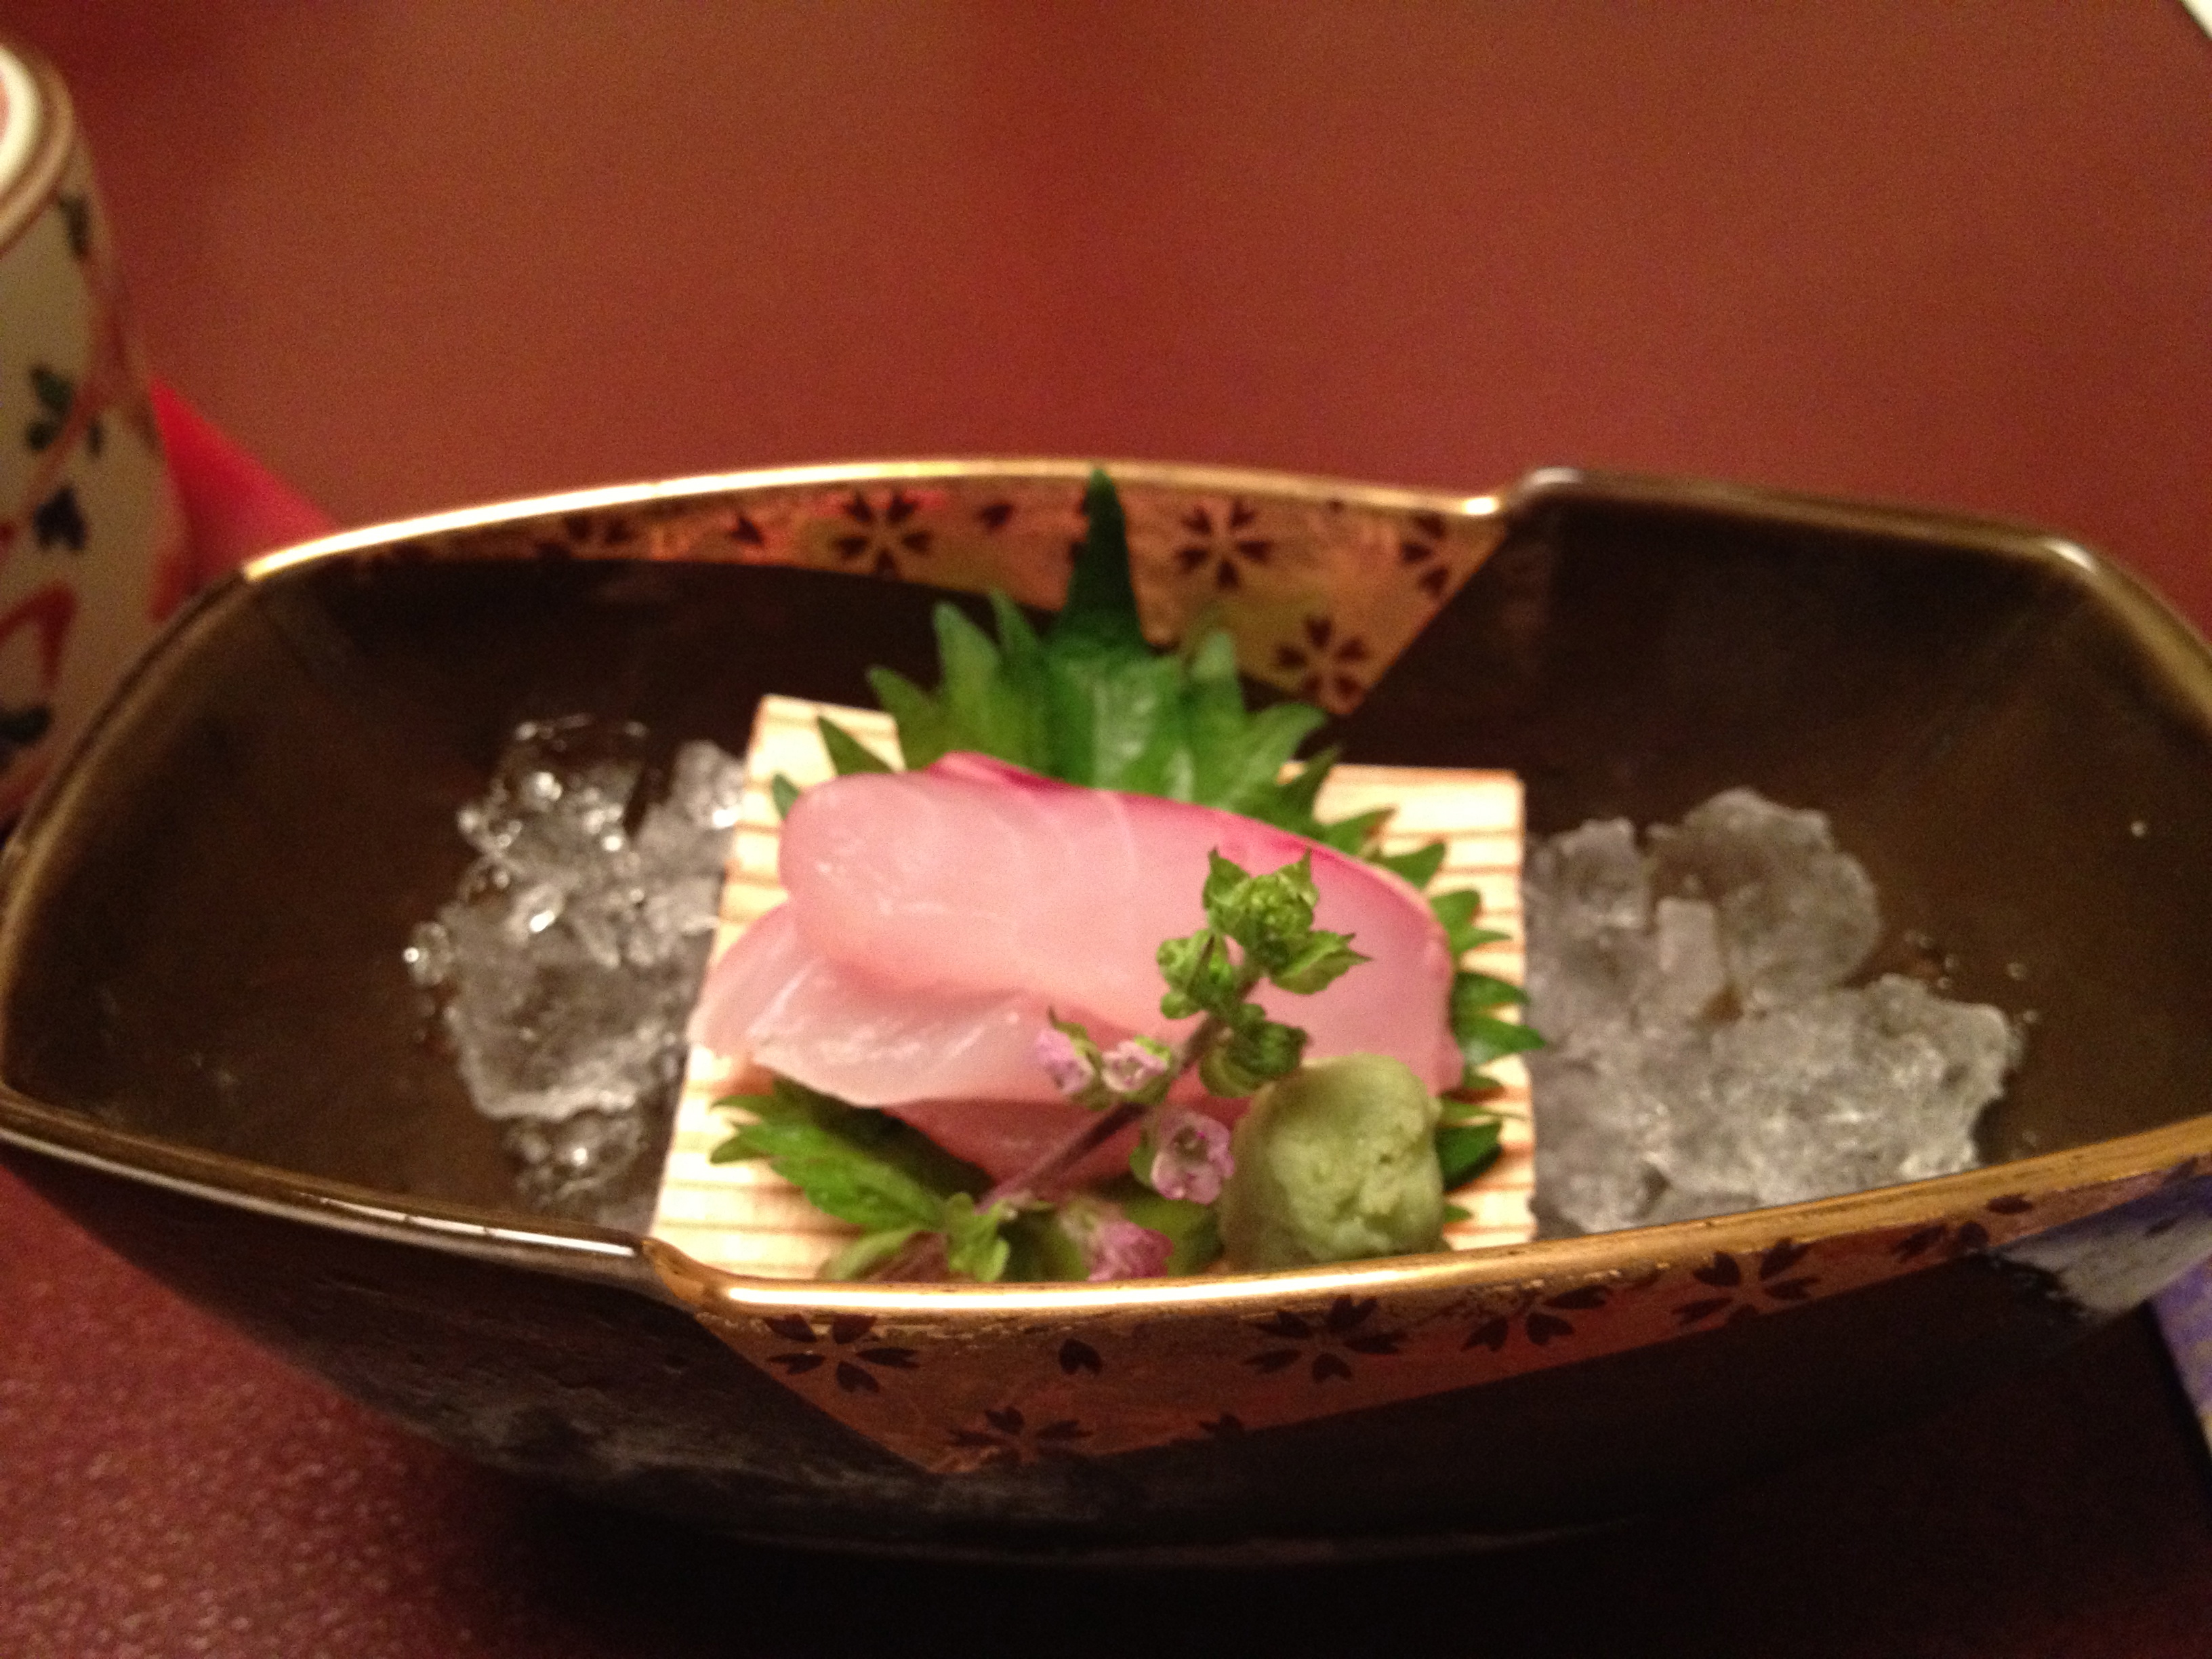 Add a dash of cultural imperialism japanese food and cooking 1956 a slightly blurry photo of sashimi from a dinner at the nikko hotel in kanazawa forumfinder Choice Image